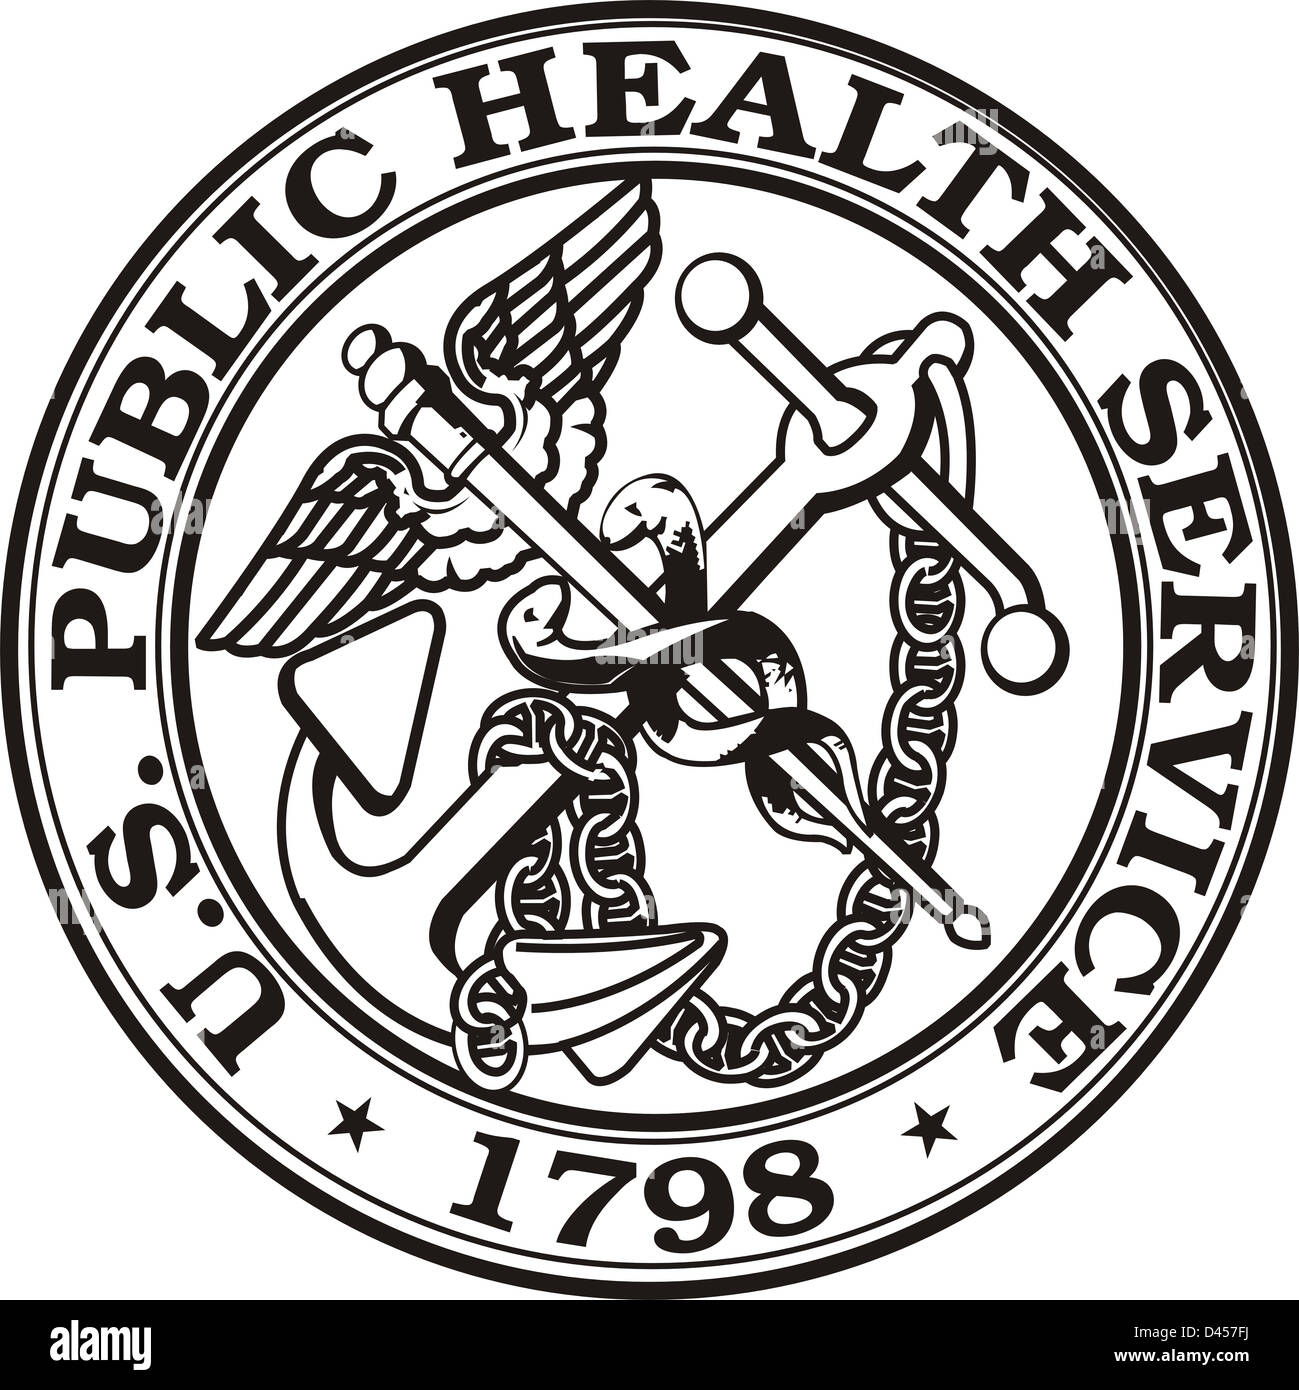 Public health in the united states